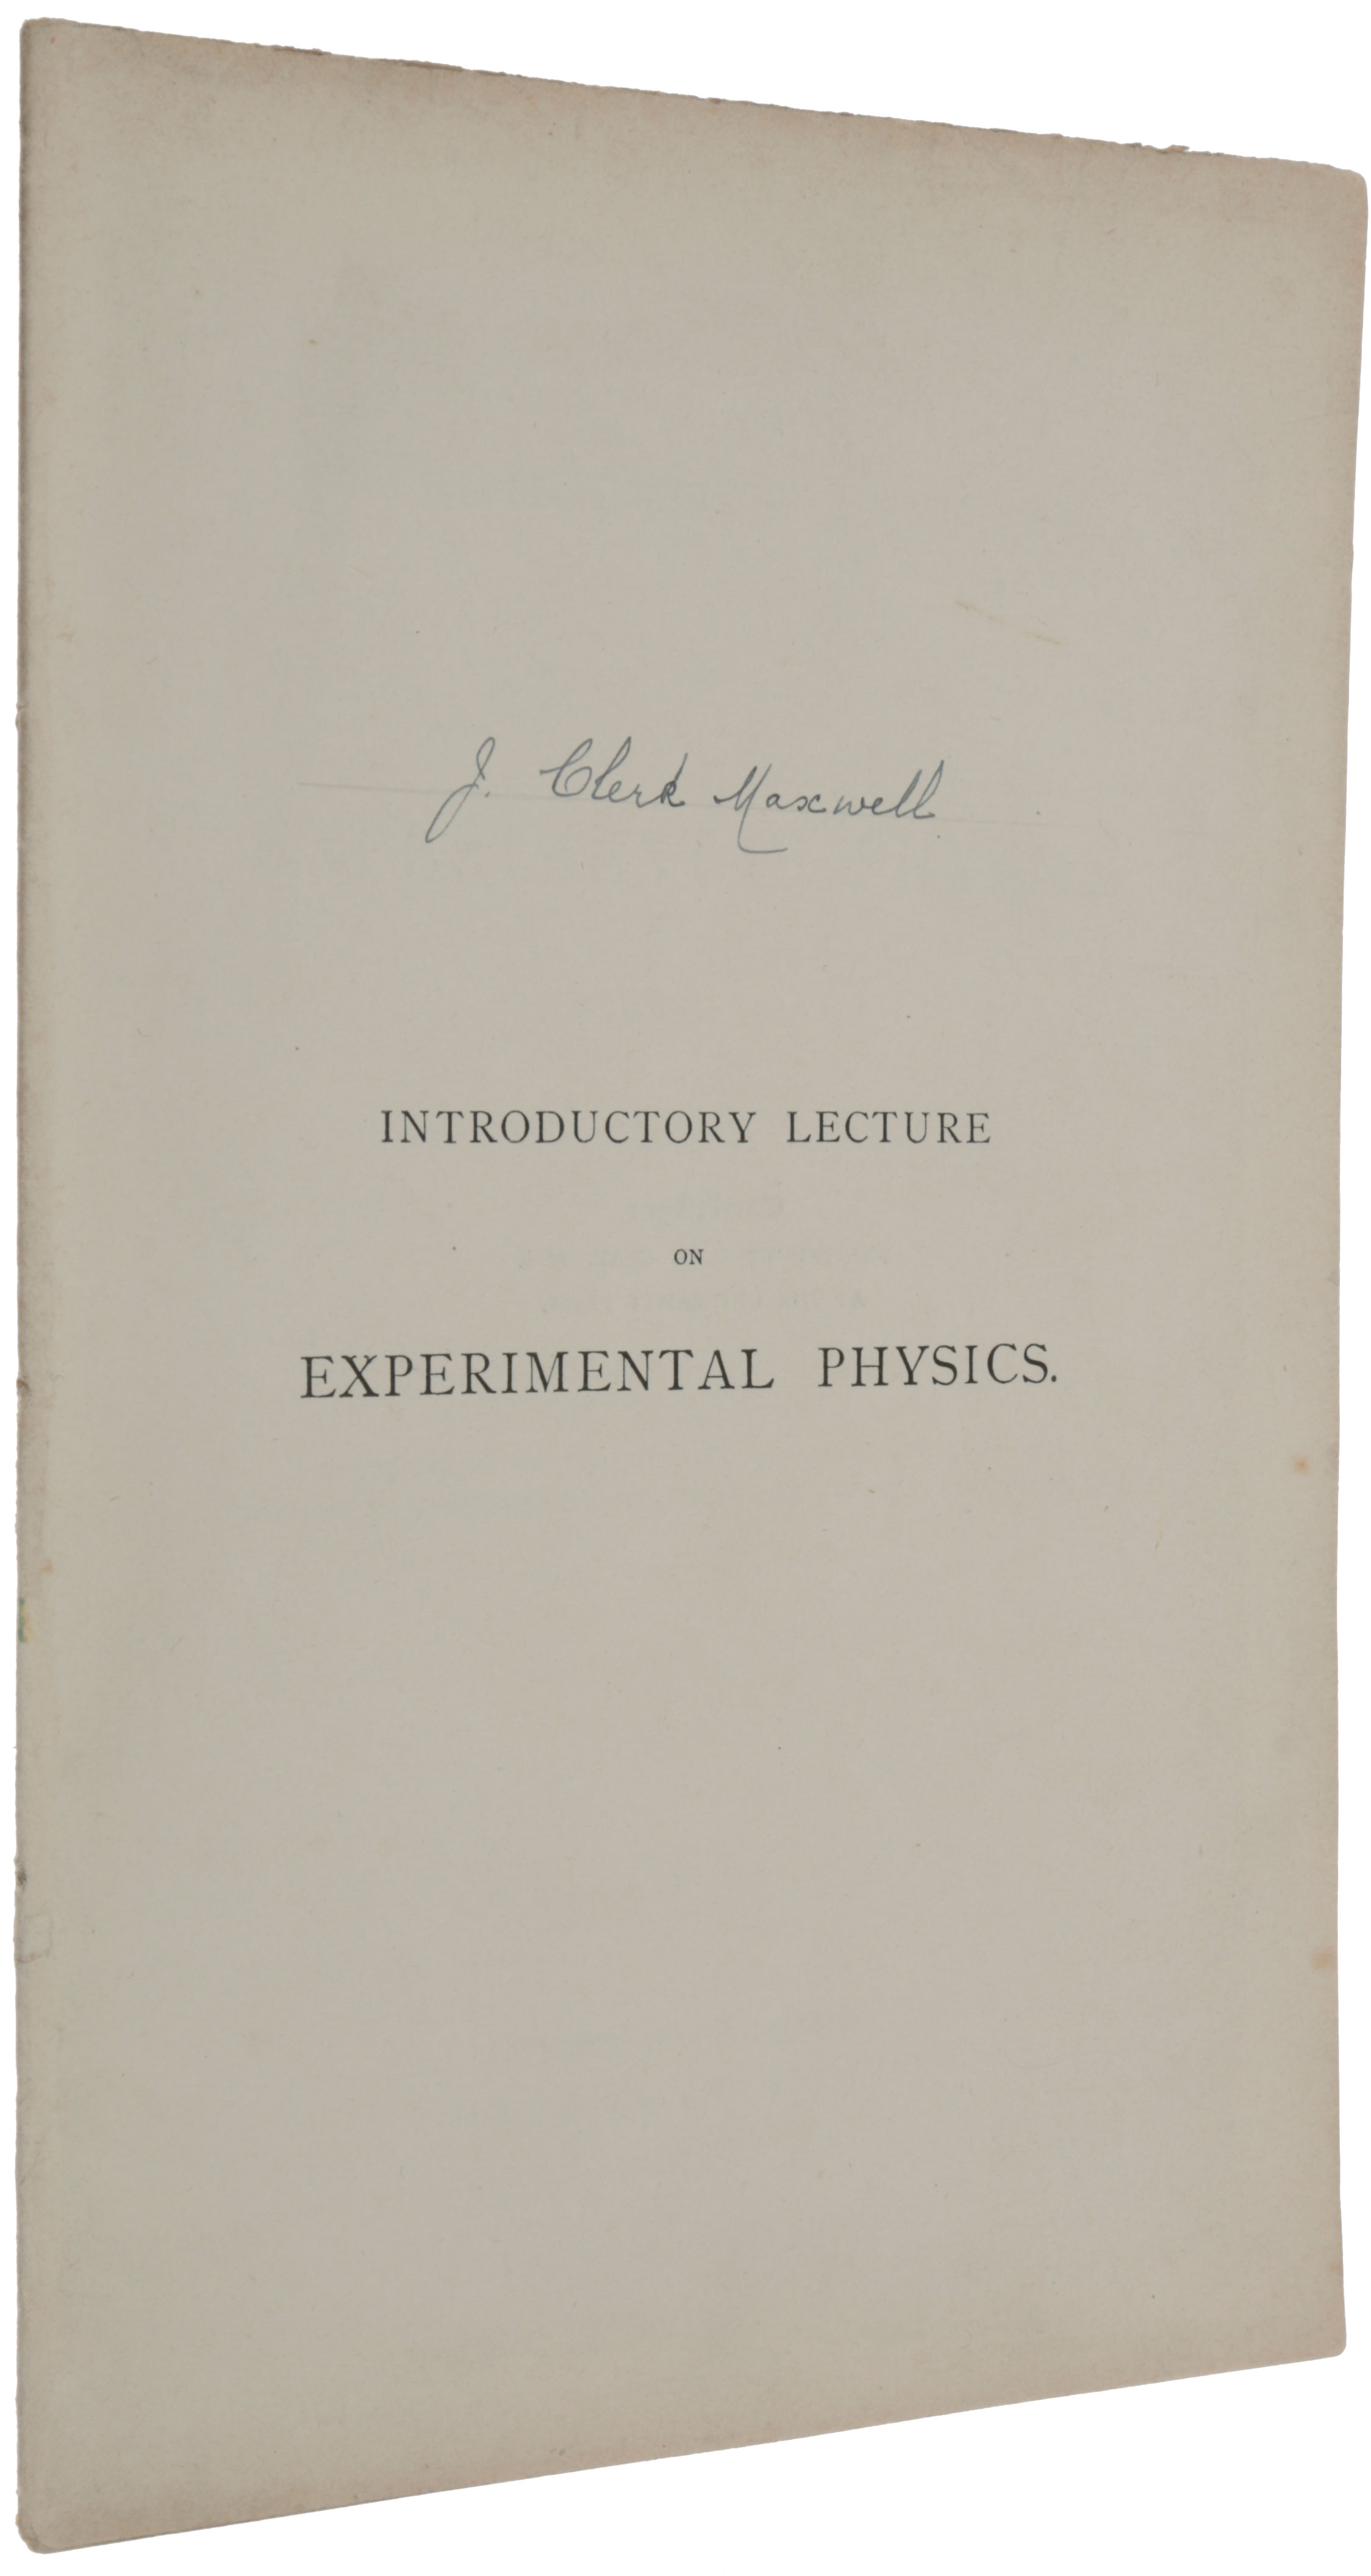 Introductory Lecture on Experimental Physics, October 25th, 1871. James Clerk MAXWELL.